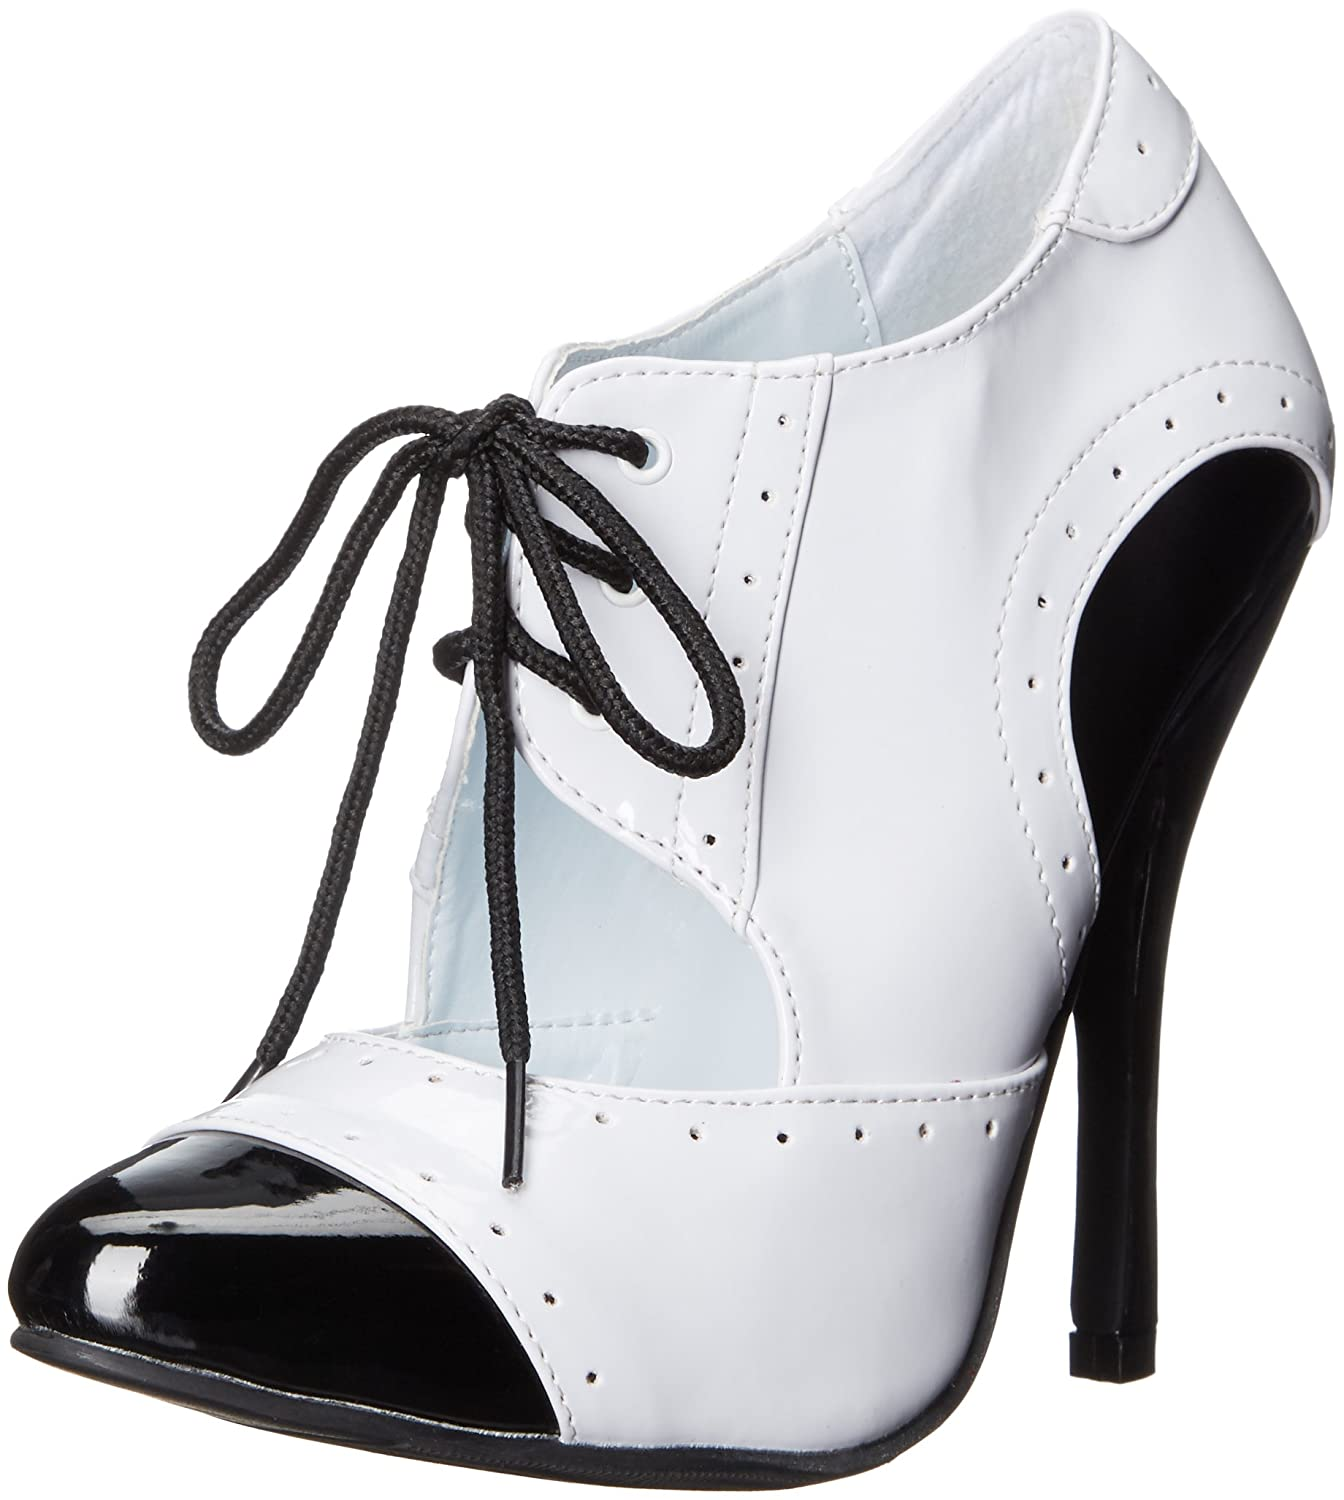 511-GANGSTER in Black & White Ellie Shoes